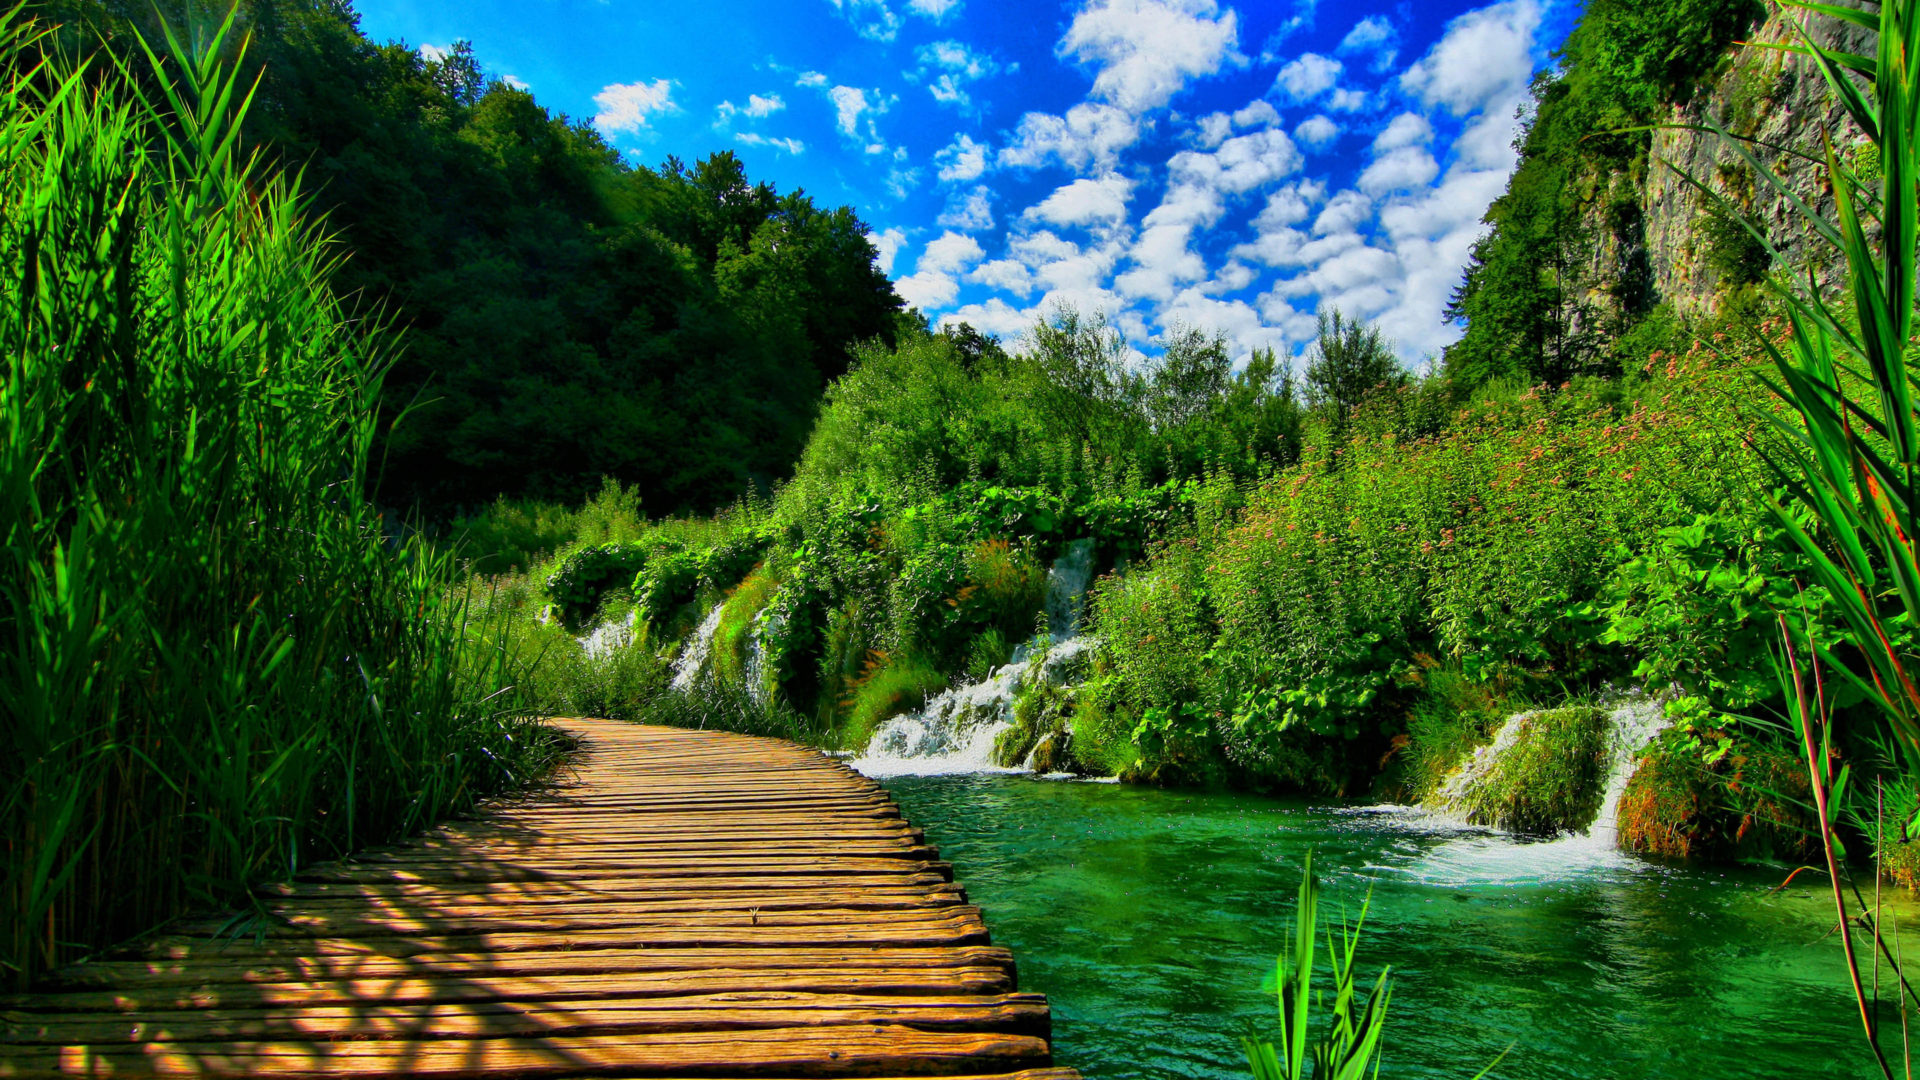 How To Use Gif As Wallpaper Iphone X Wooden Pontoon Bridge Nature Landscape Hd Wallpapers